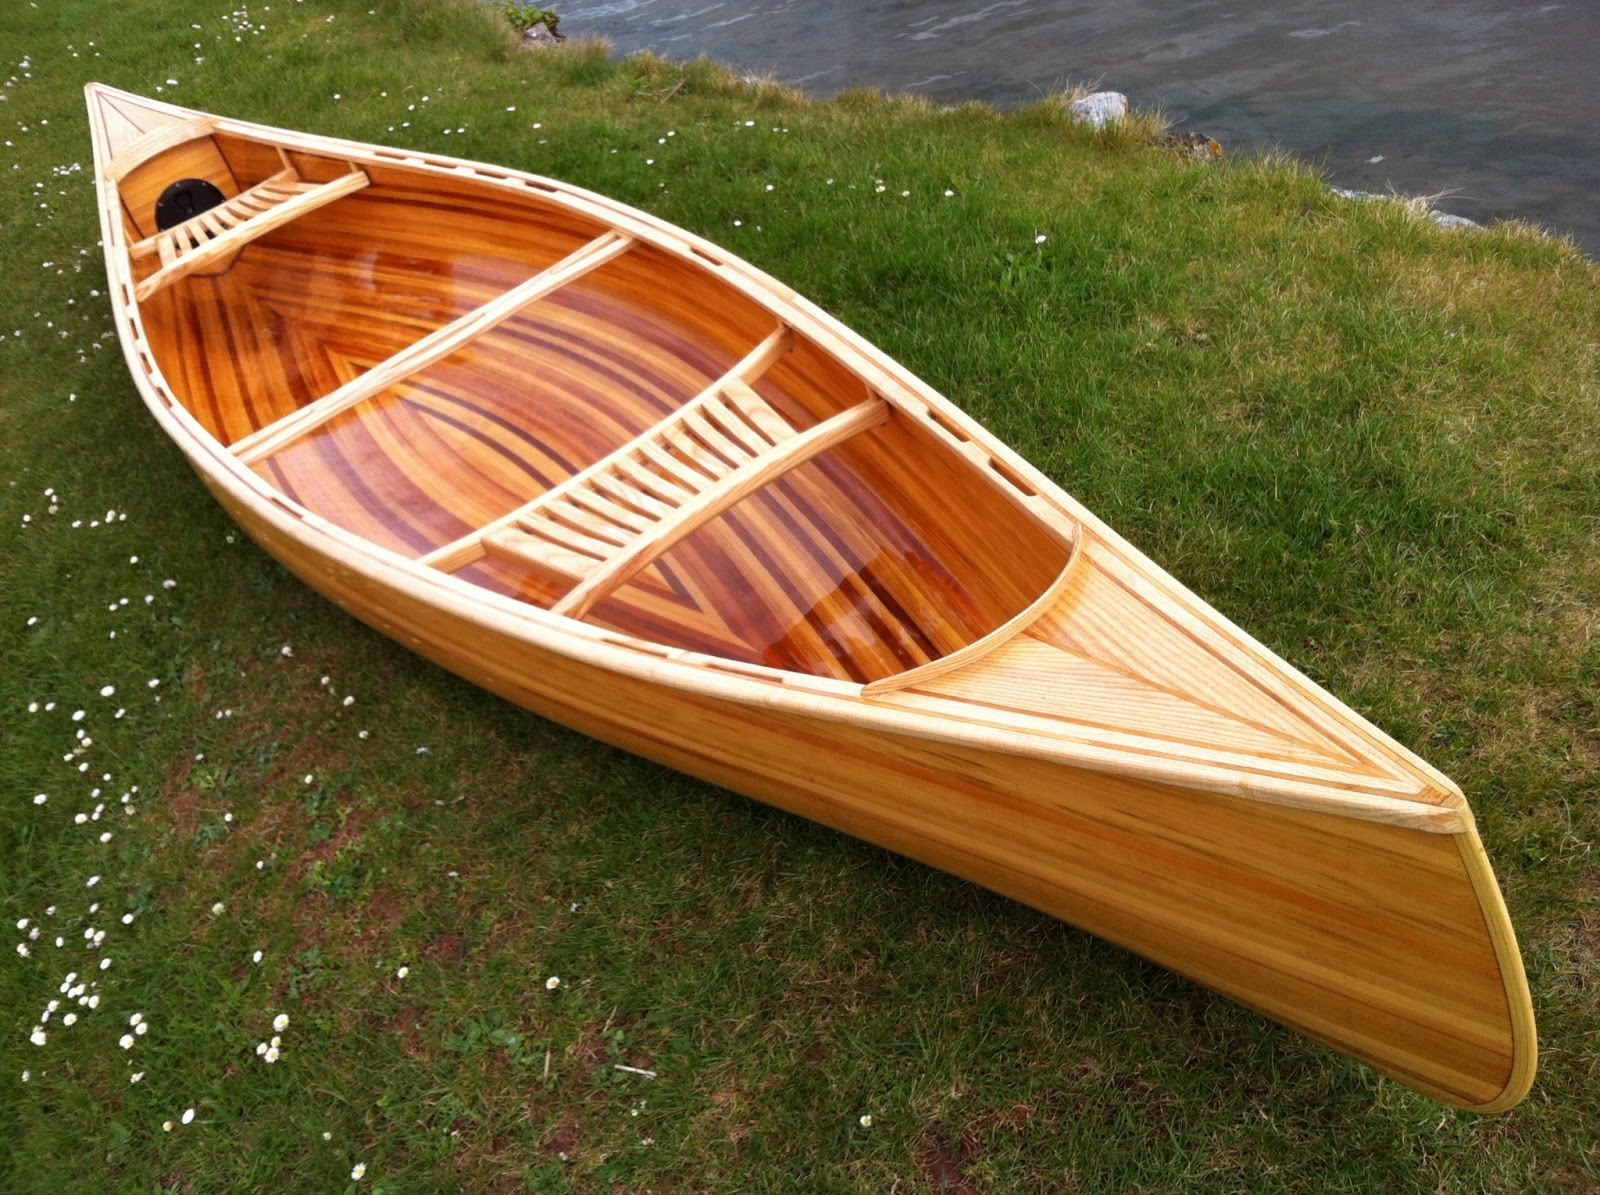 Current Projects 14 39 Strip Plank Canoe Final Update